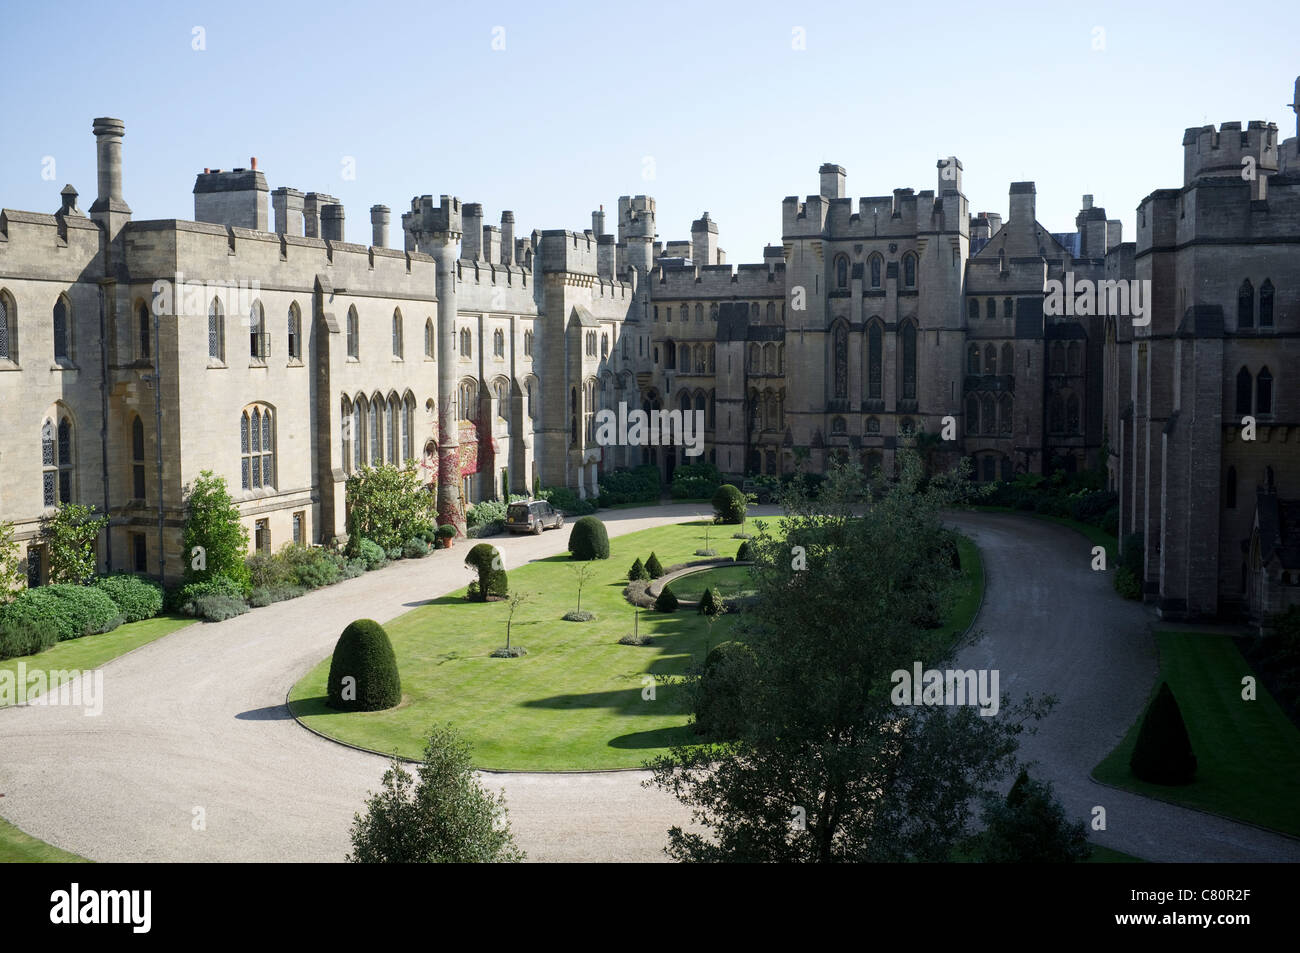 Arundel Castle Quadrangle from the Norman Keep -1 - Stock Image